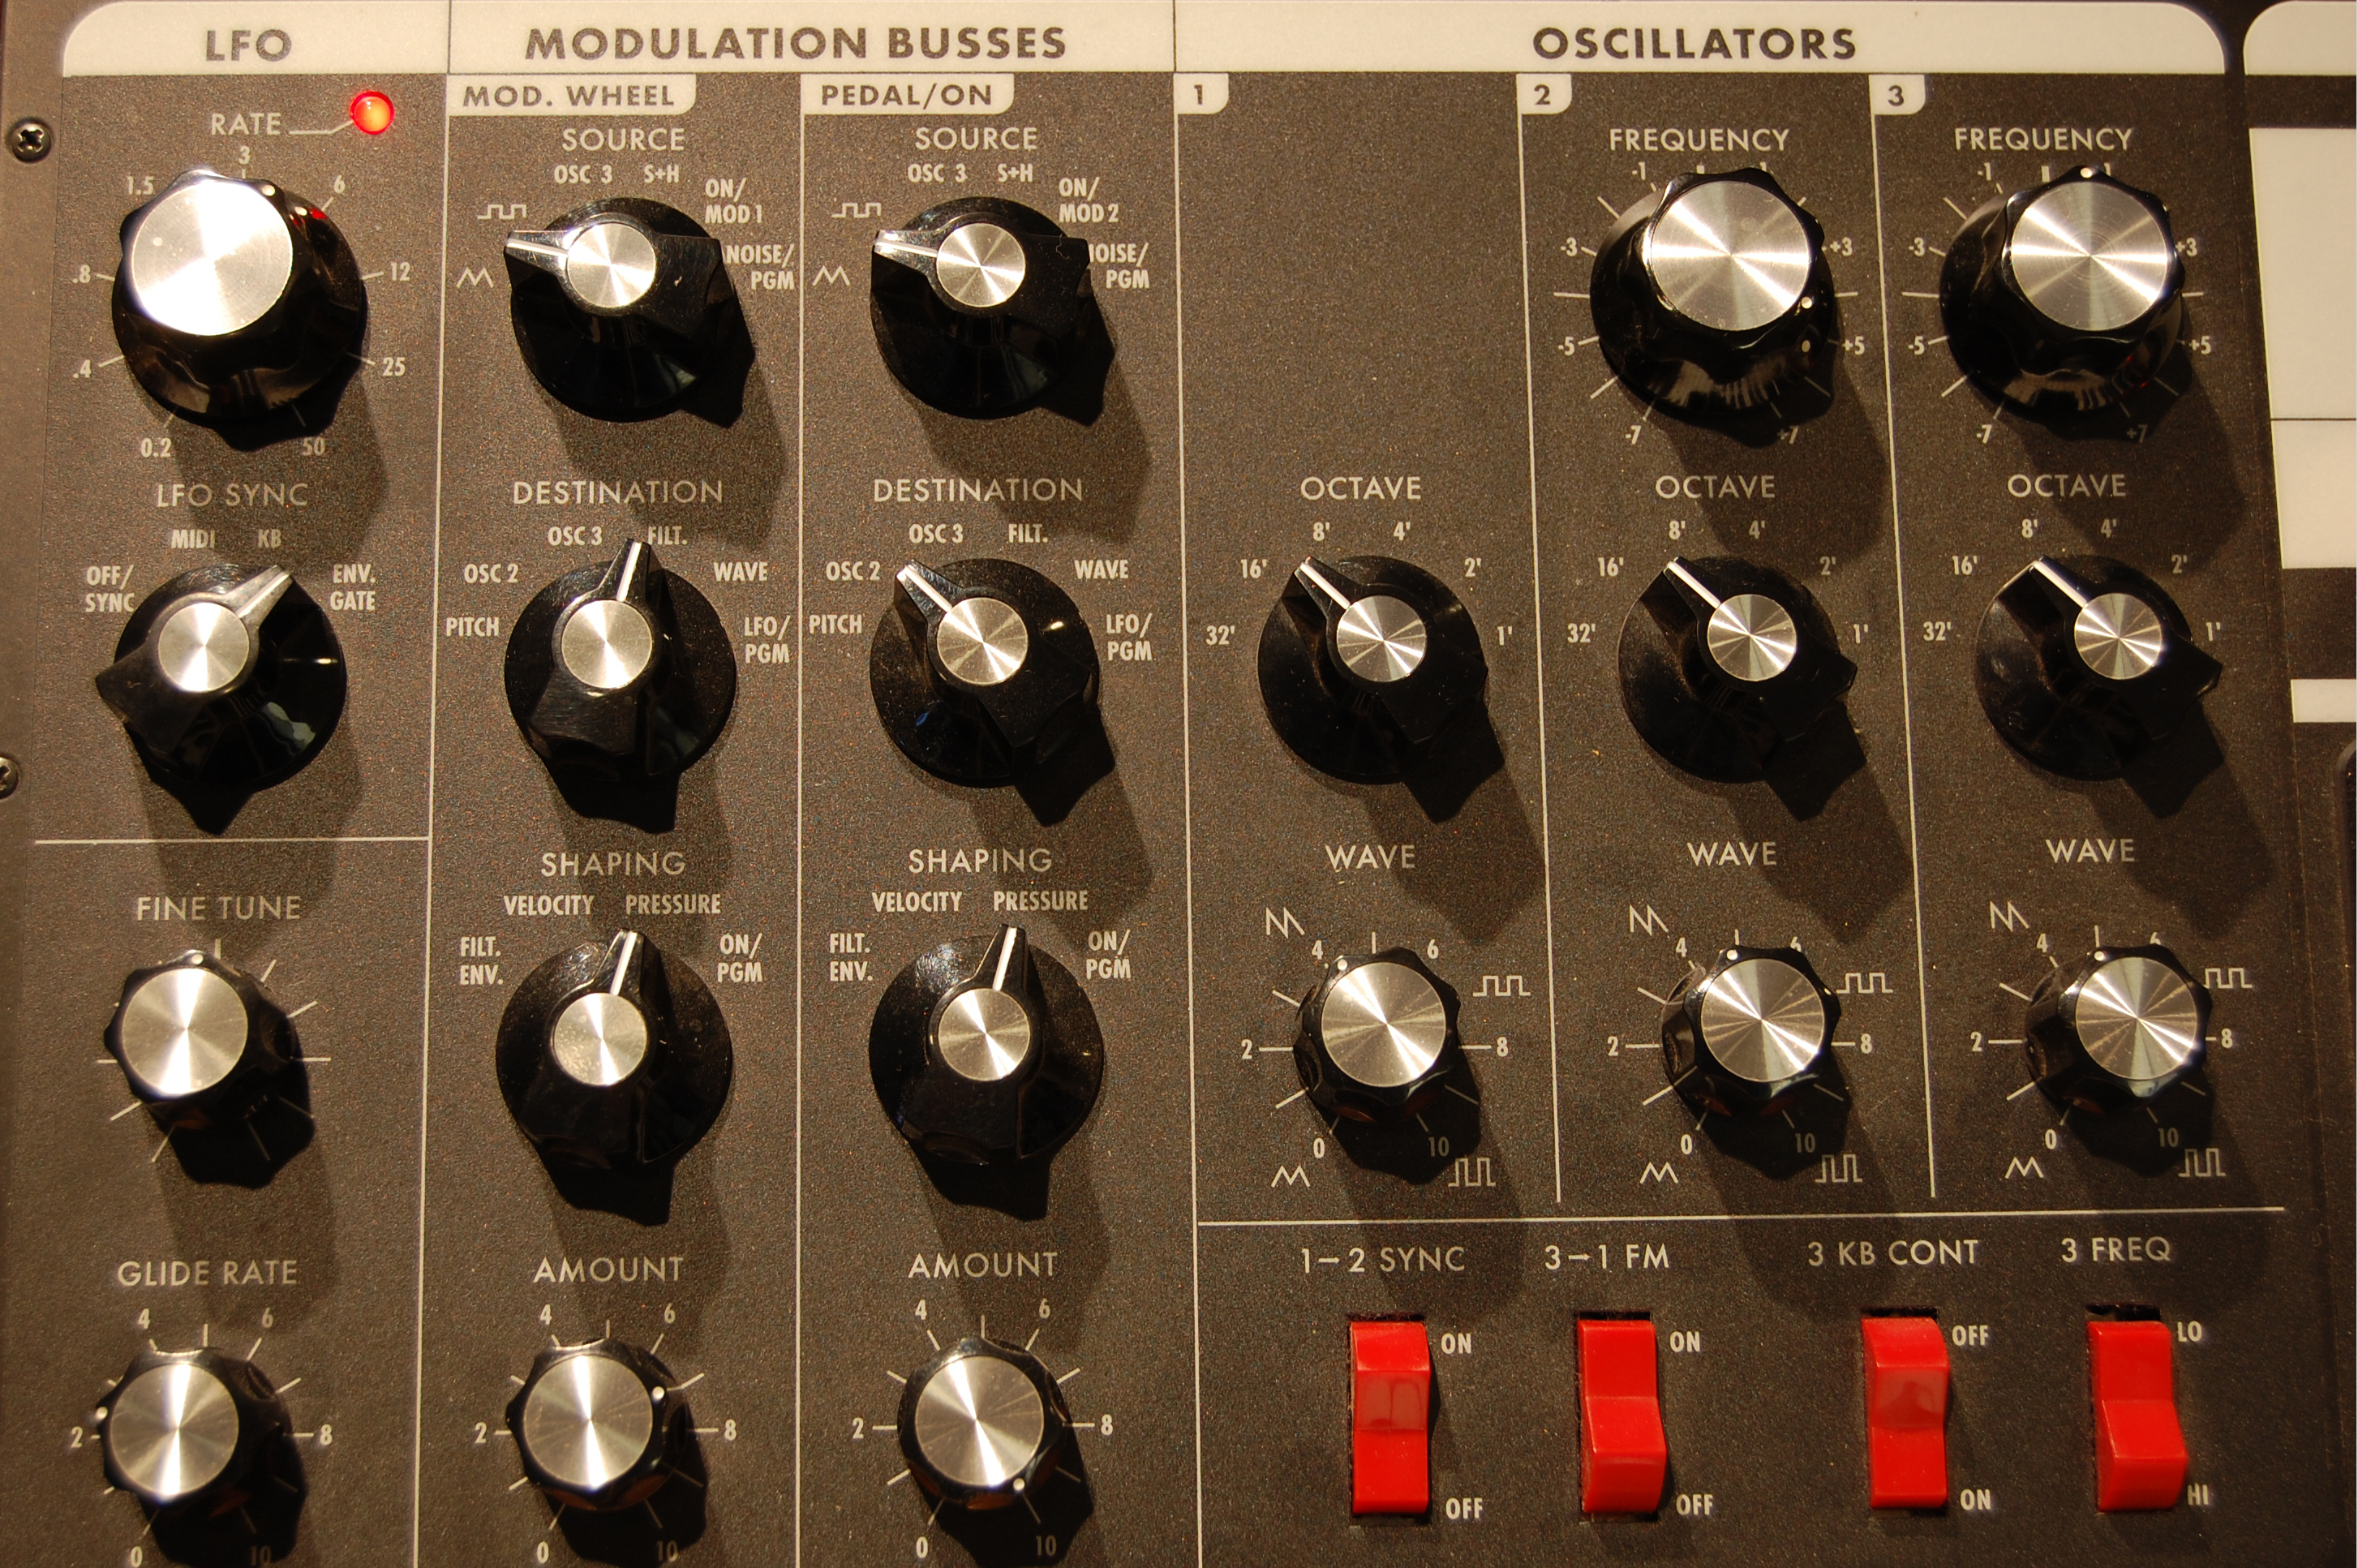 Minimoog Voyager (left panel)